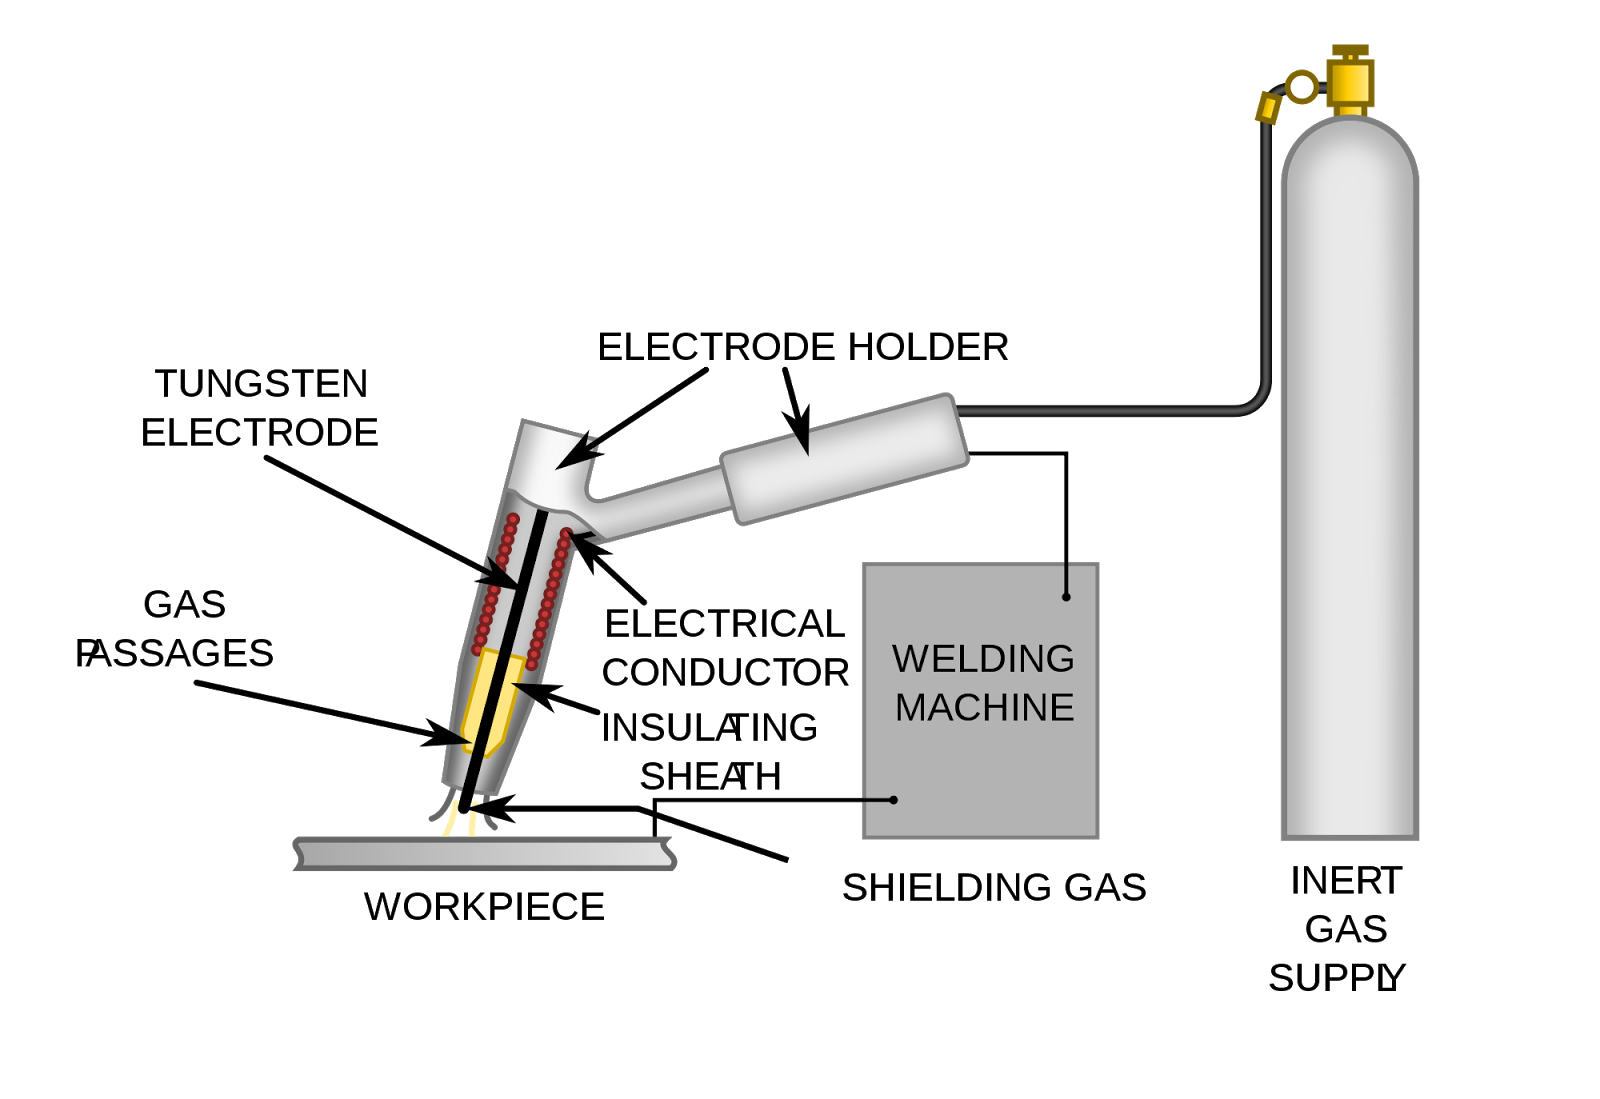 Types Of Welding Manufacturing Technology Mechanical Engineering Resistance Diagram In This Process The Electrode Is Not Consumable During And Gas Used To Protect Weld Area Form Atmospheric Air